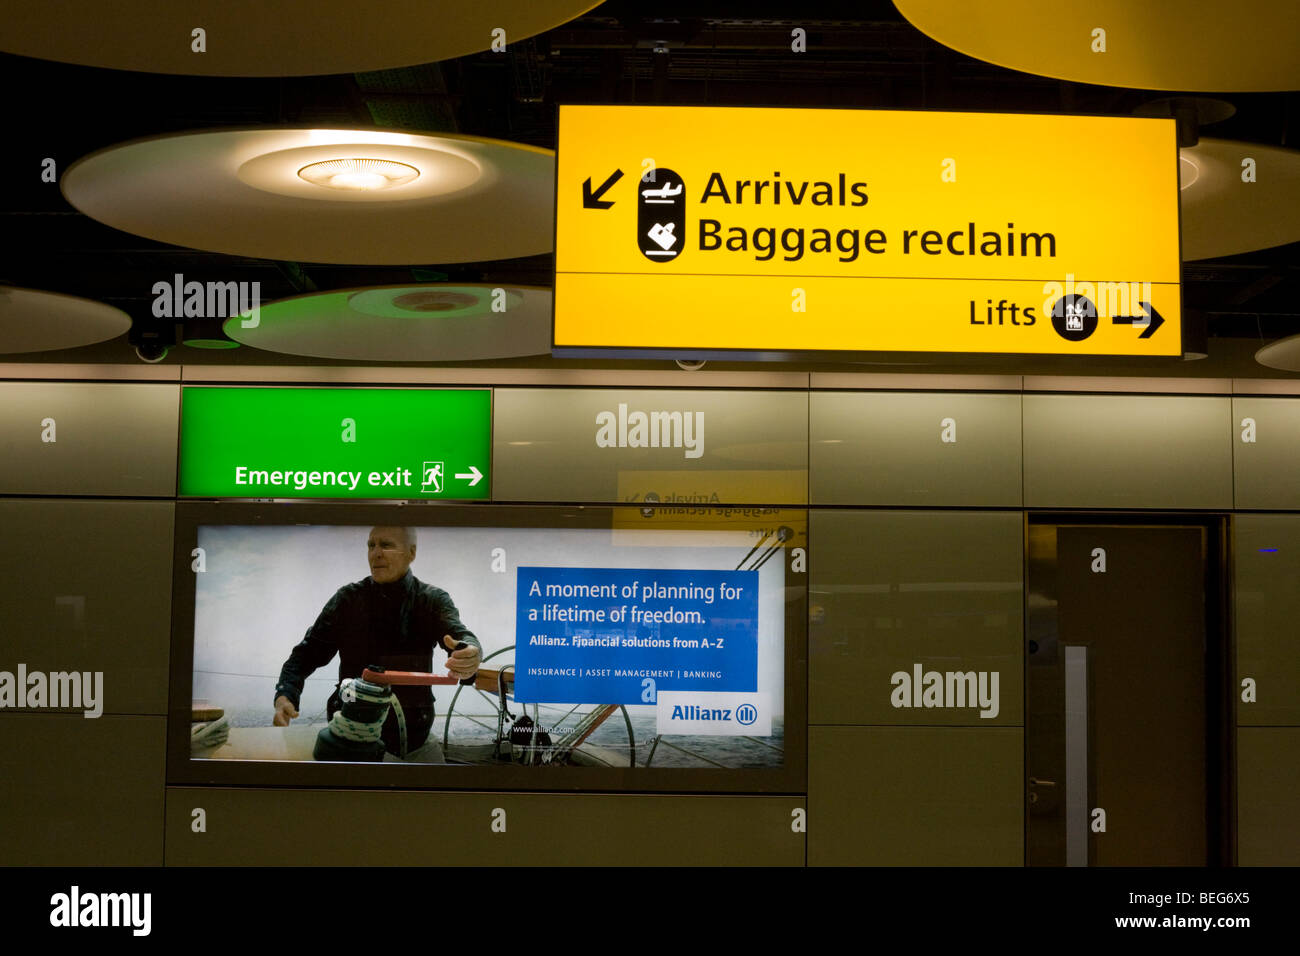 Baggage reclaim hall architecture and advertising at Heathrow's Terminal 5. - Stock Image